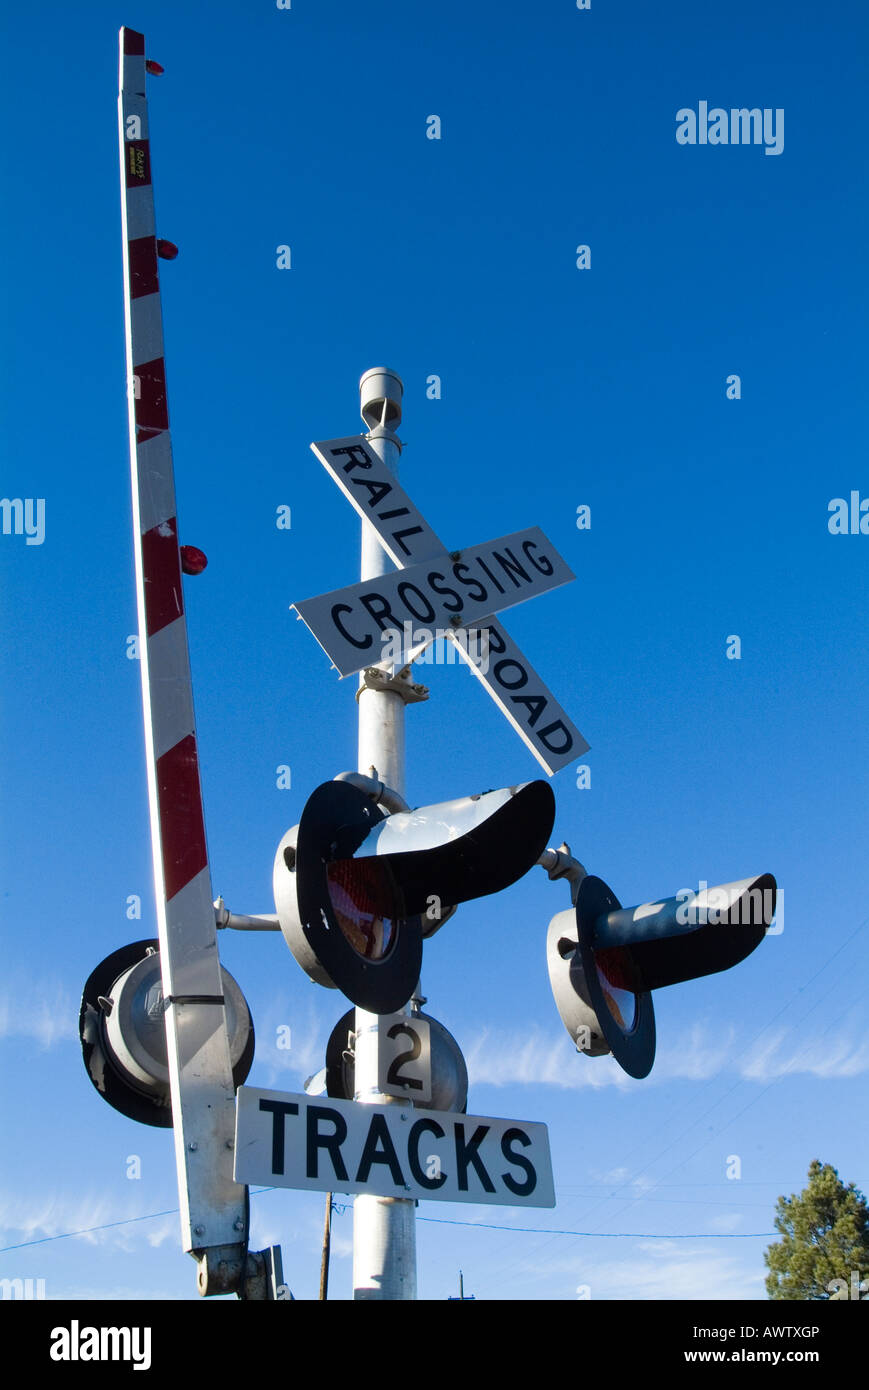 railway crossing sign track road lights barrier level crossing american america united states us usa - Stock Image